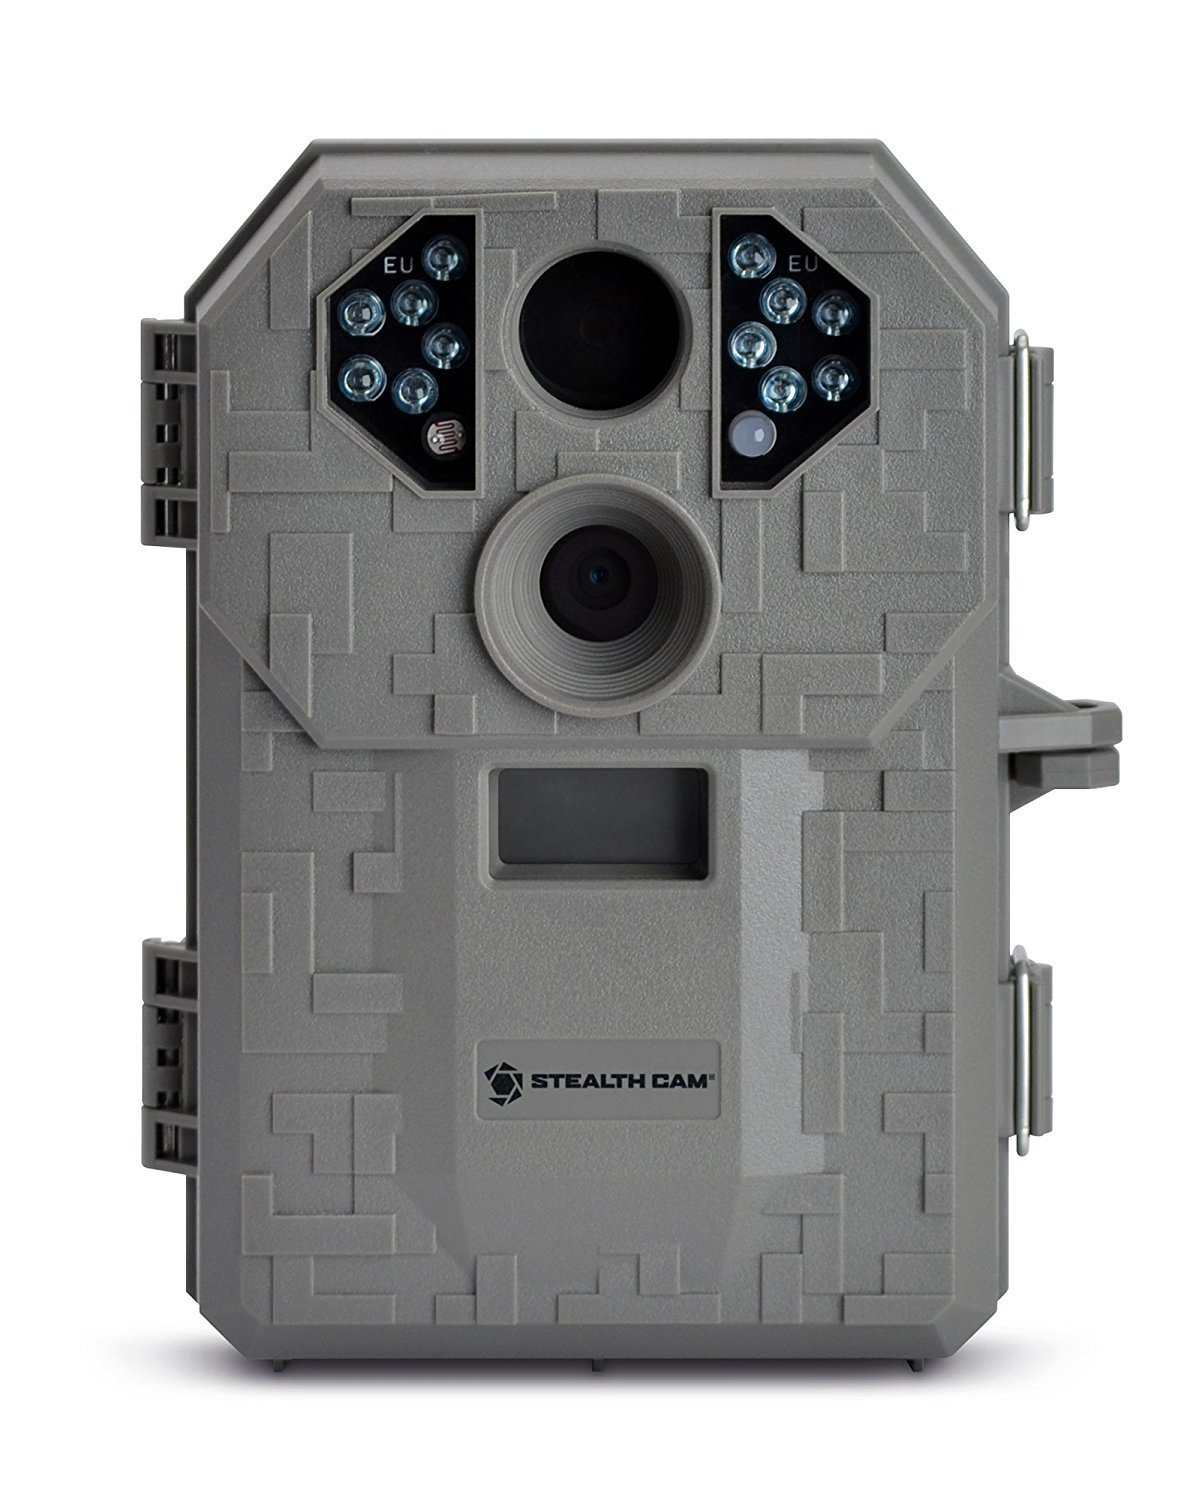 By-Stealth Cam Covert Trail Camera, 6mp Small Wireless Hunting Trail Game Camera